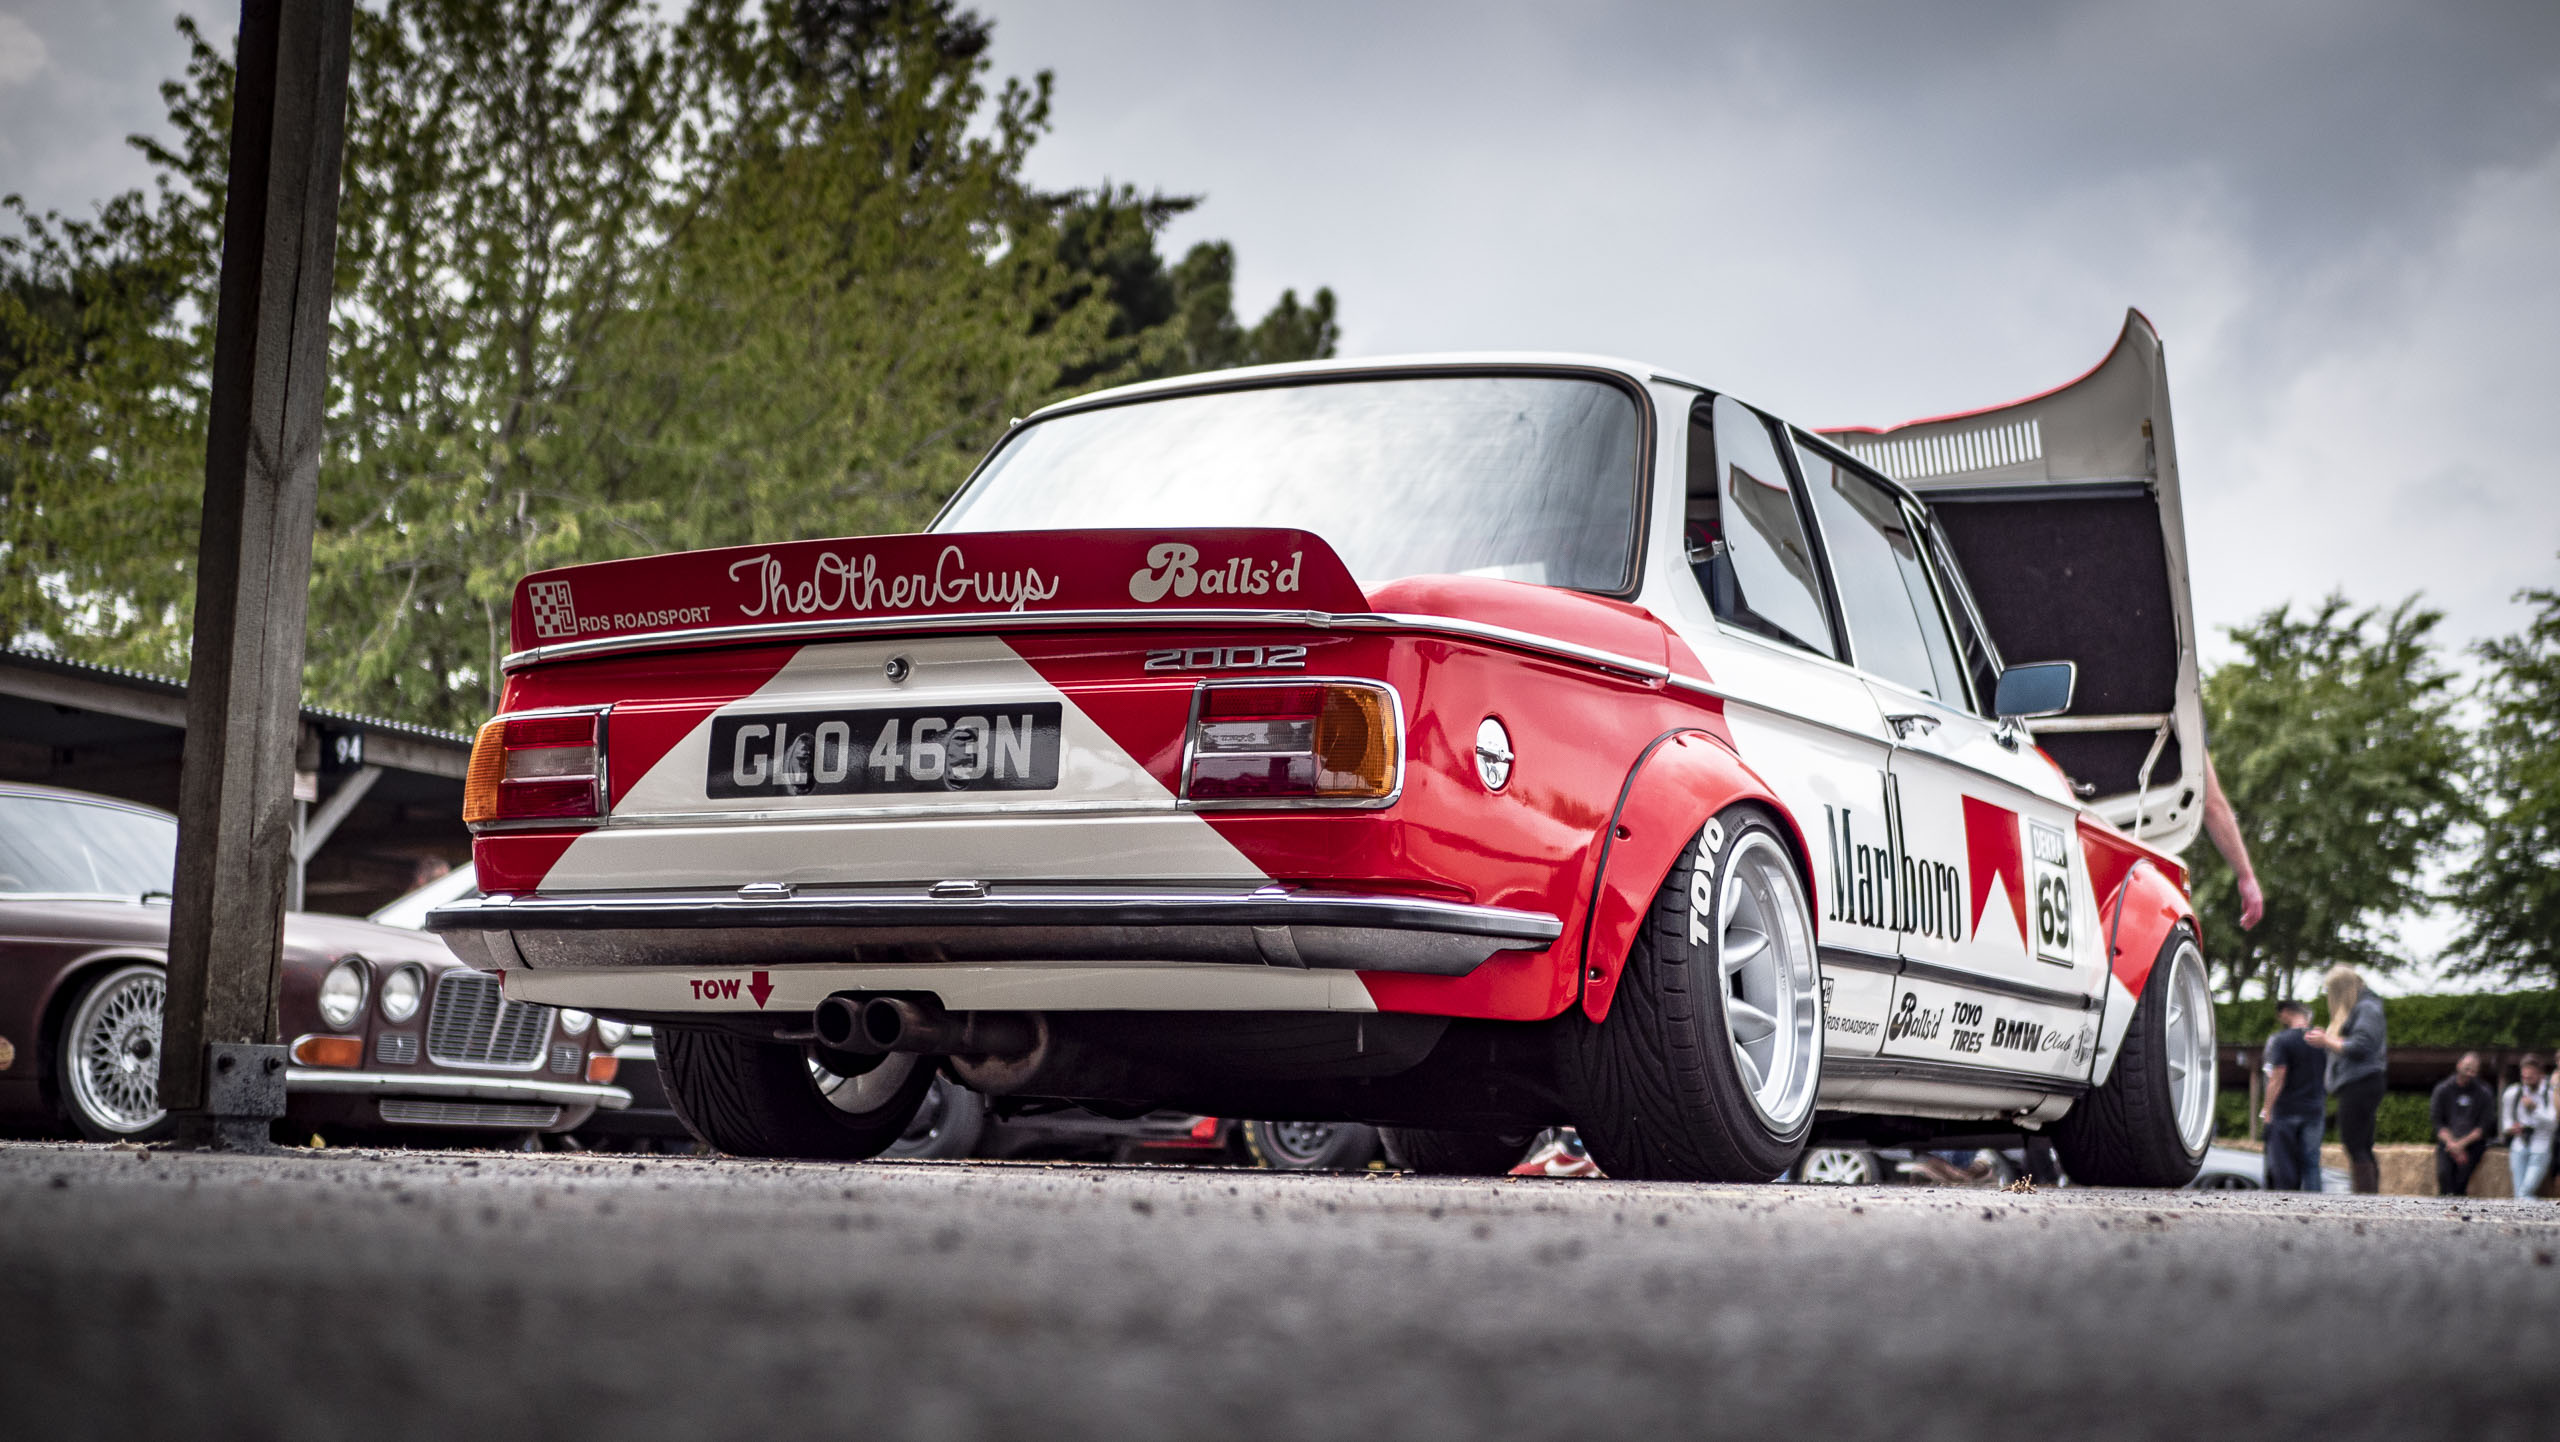 Retro rides weekender 2019 BMW Race car back